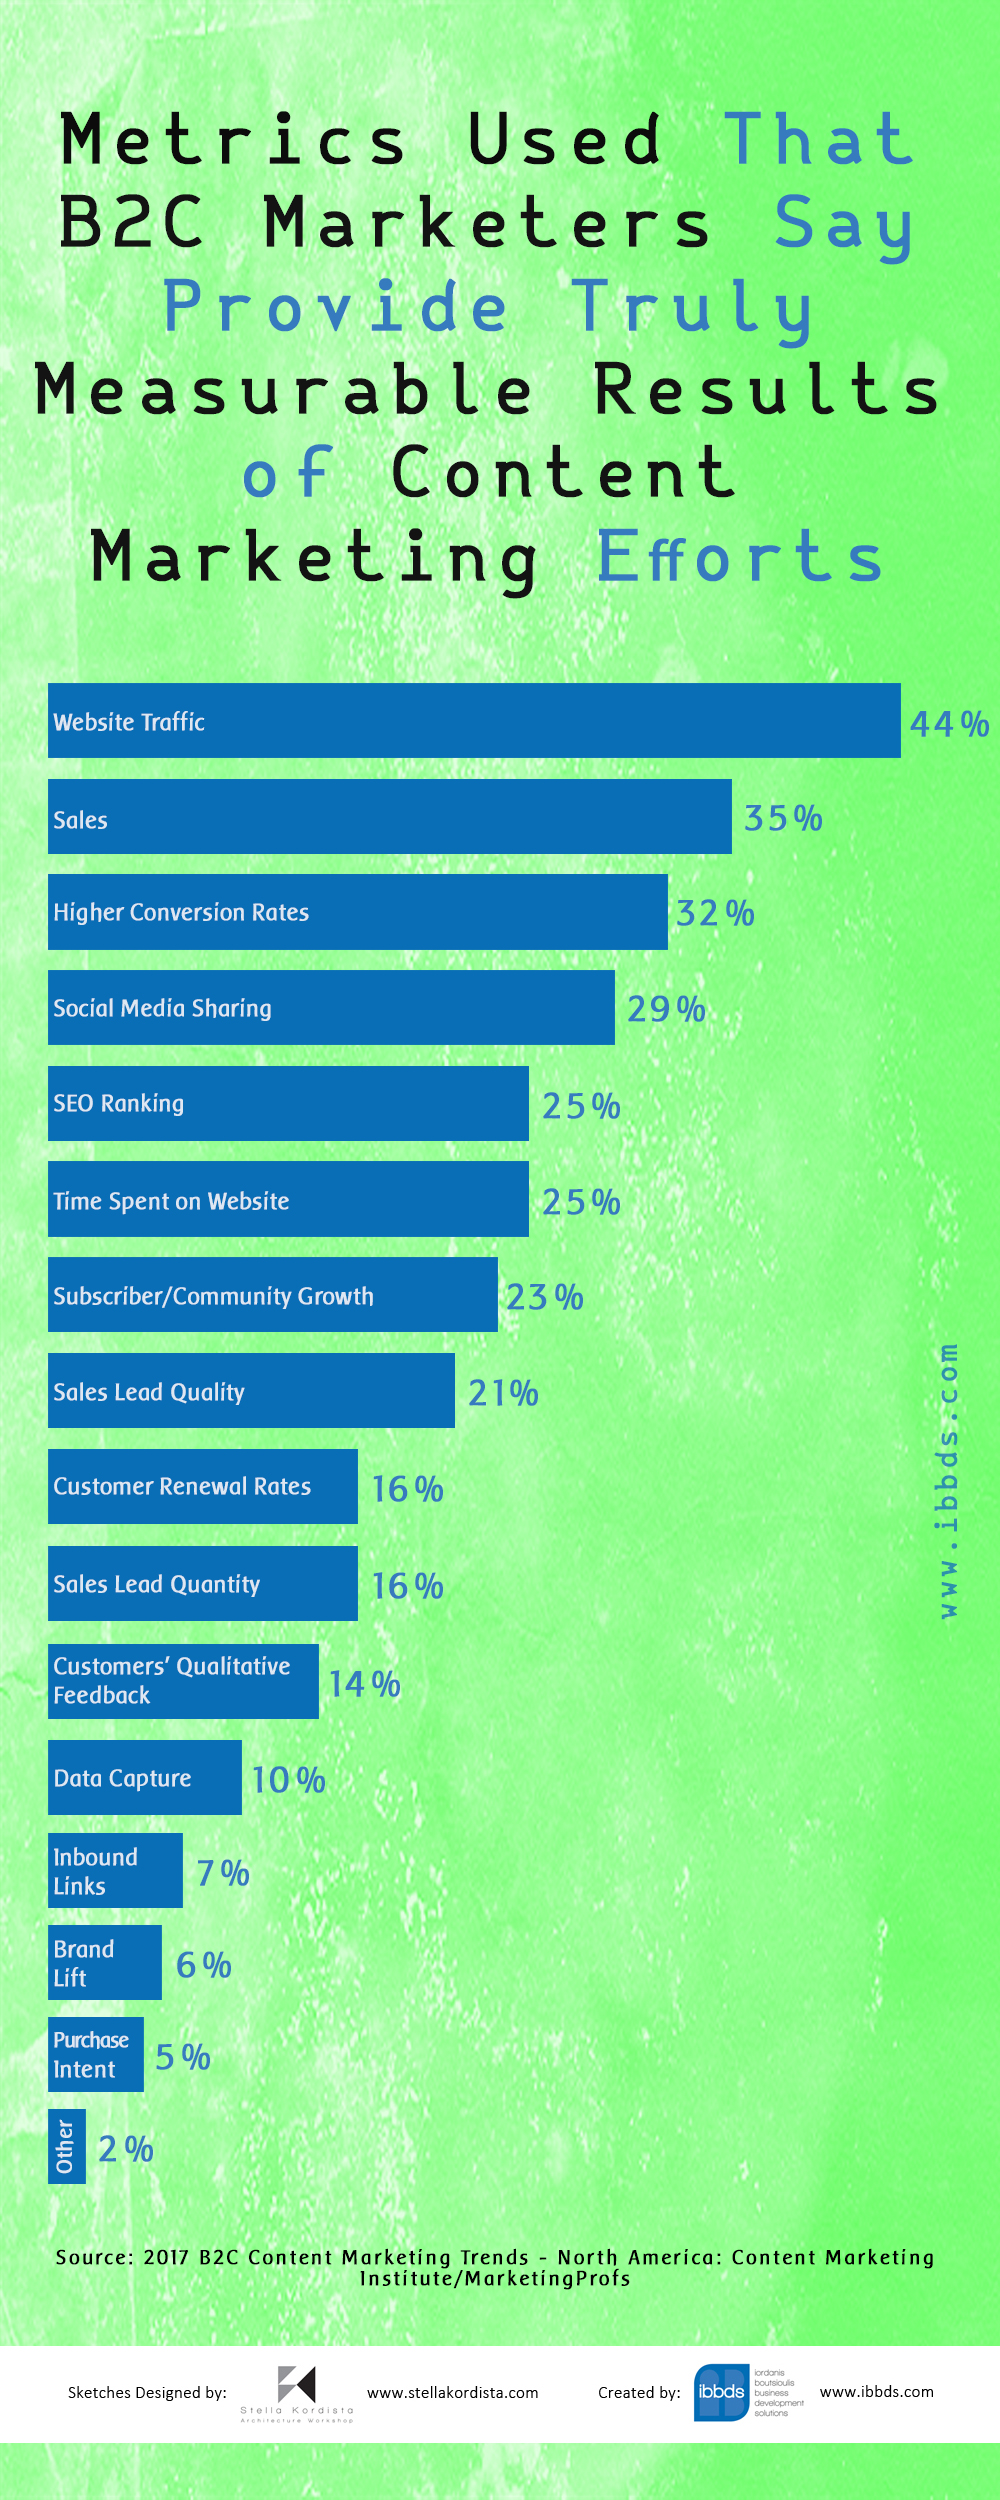 Metrics Used That BTC Marketers Say Provide Truly Measurable Results of Content Marketing Efforts, Infographic by ibbds